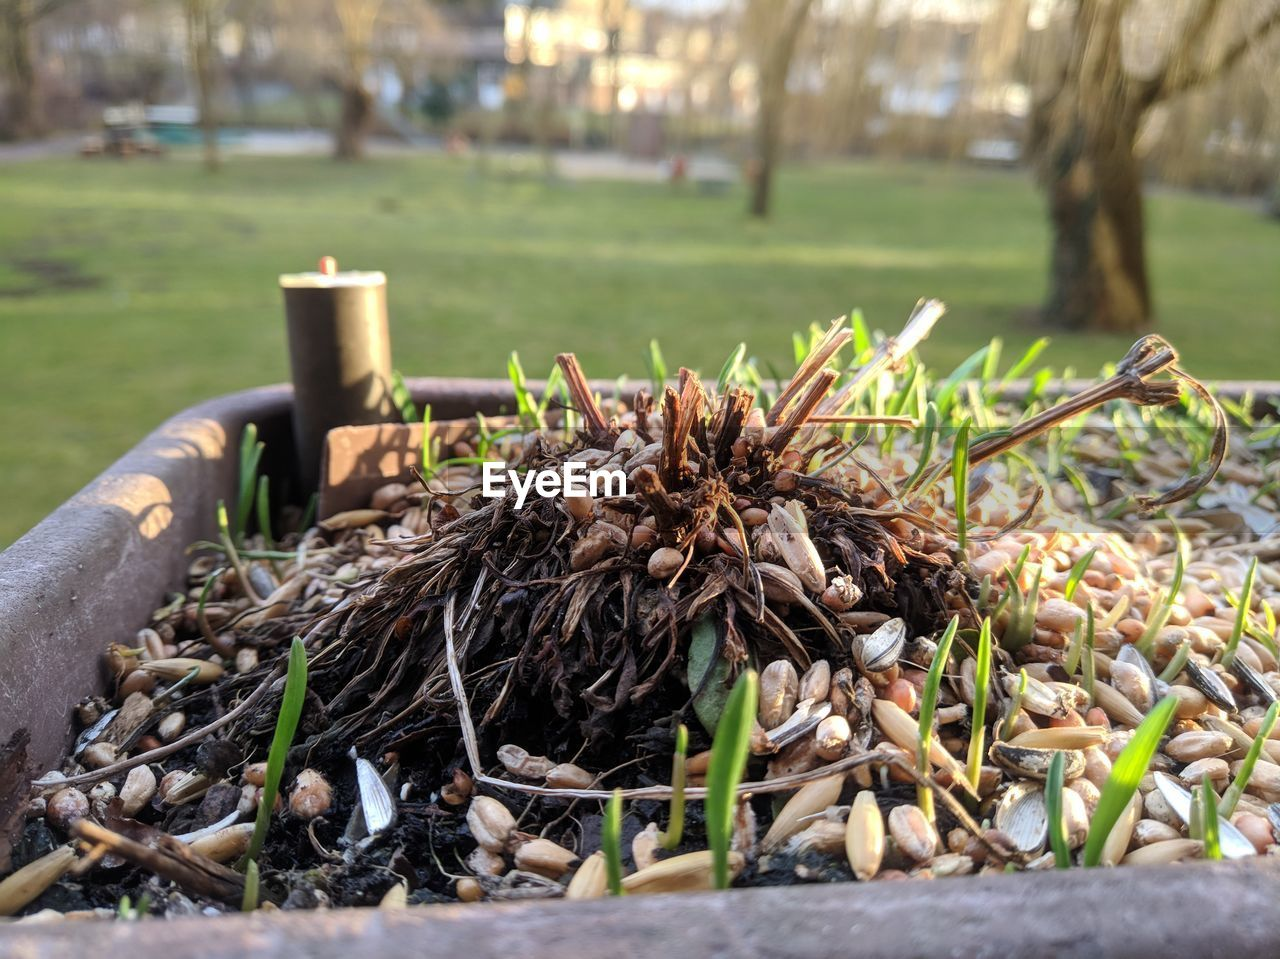 plant, day, tree, no people, focus on foreground, nature, growth, wood - material, close-up, outdoors, field, selective focus, land, grass, sunlight, heap, log, dry, brown, plant part